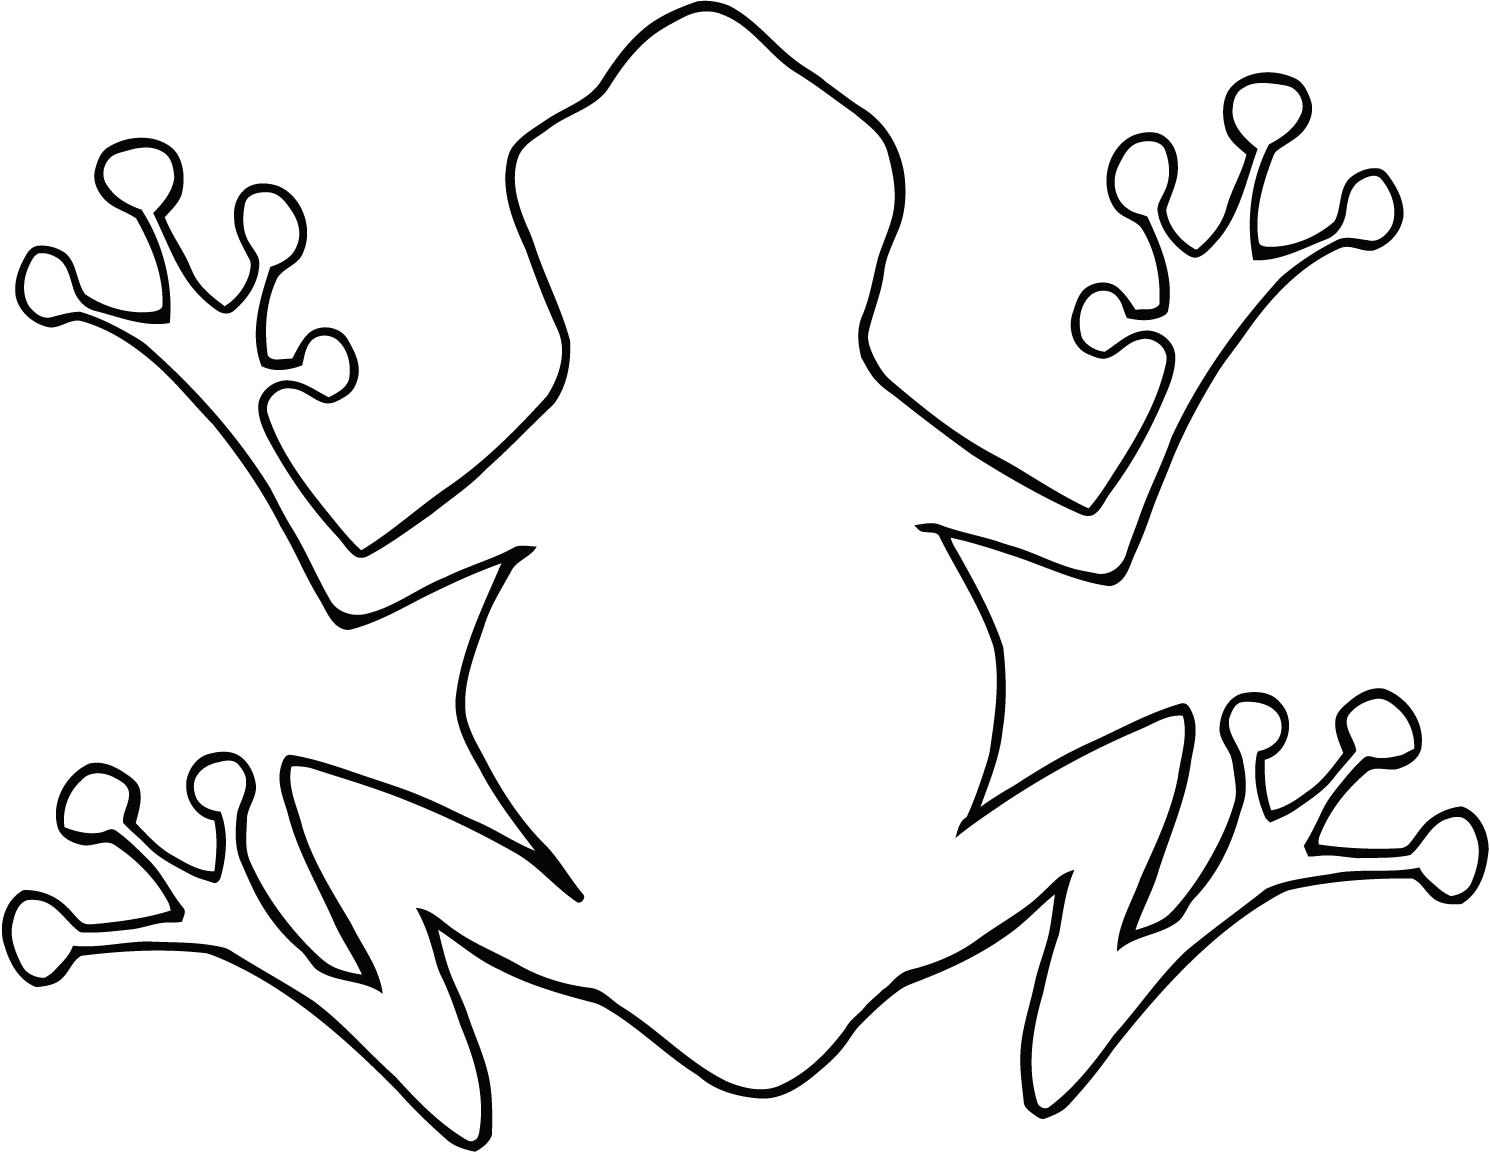 Free Outline Of A Frog, Download Free Clip Art, Free Clip.